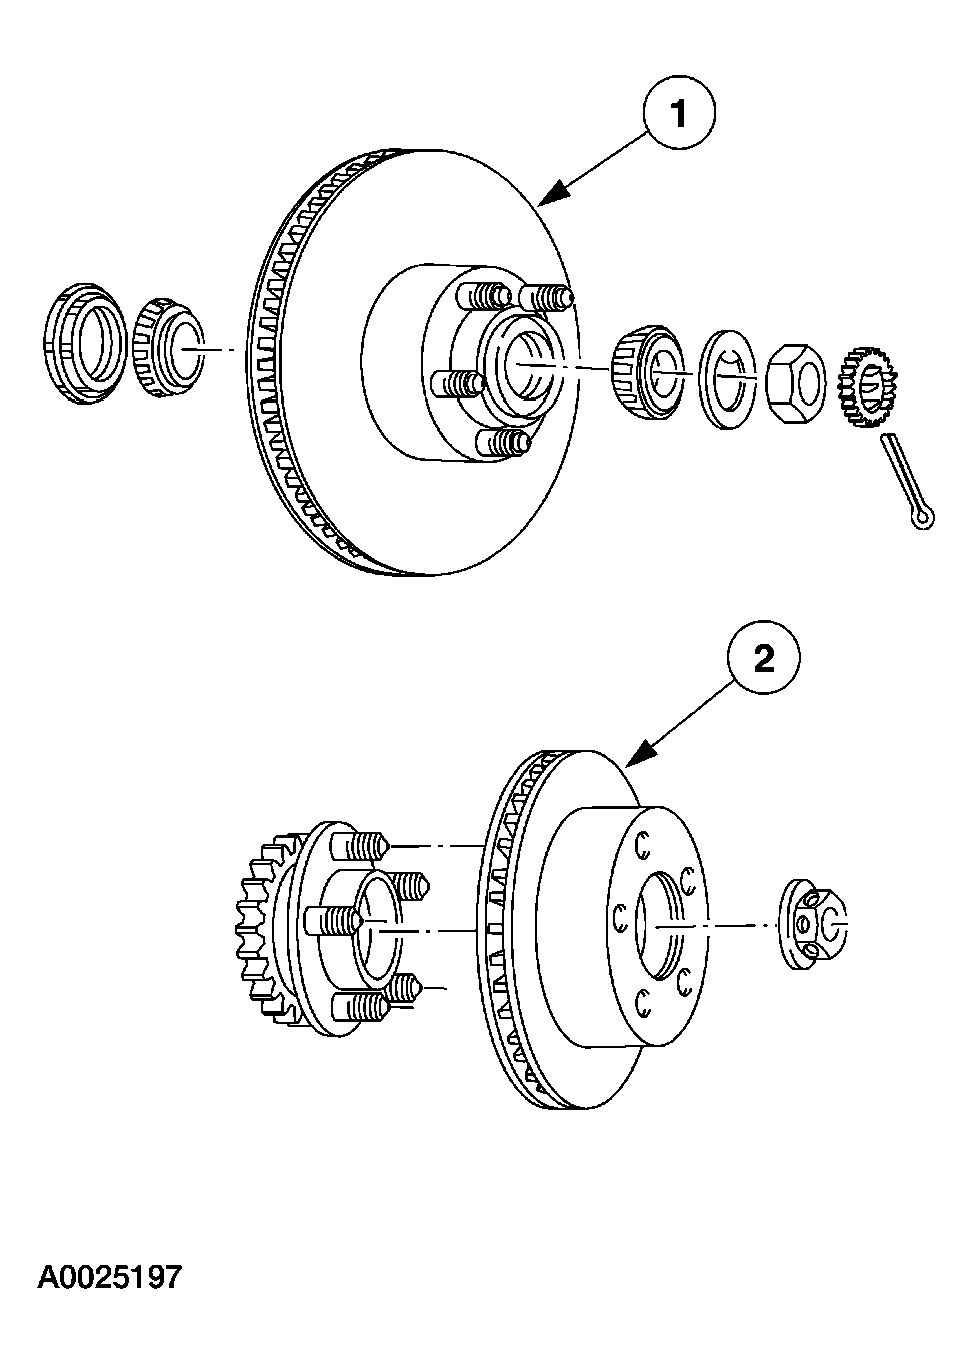 Front Spindle Nut: When Tightening Spindle Nut to 295 Ft